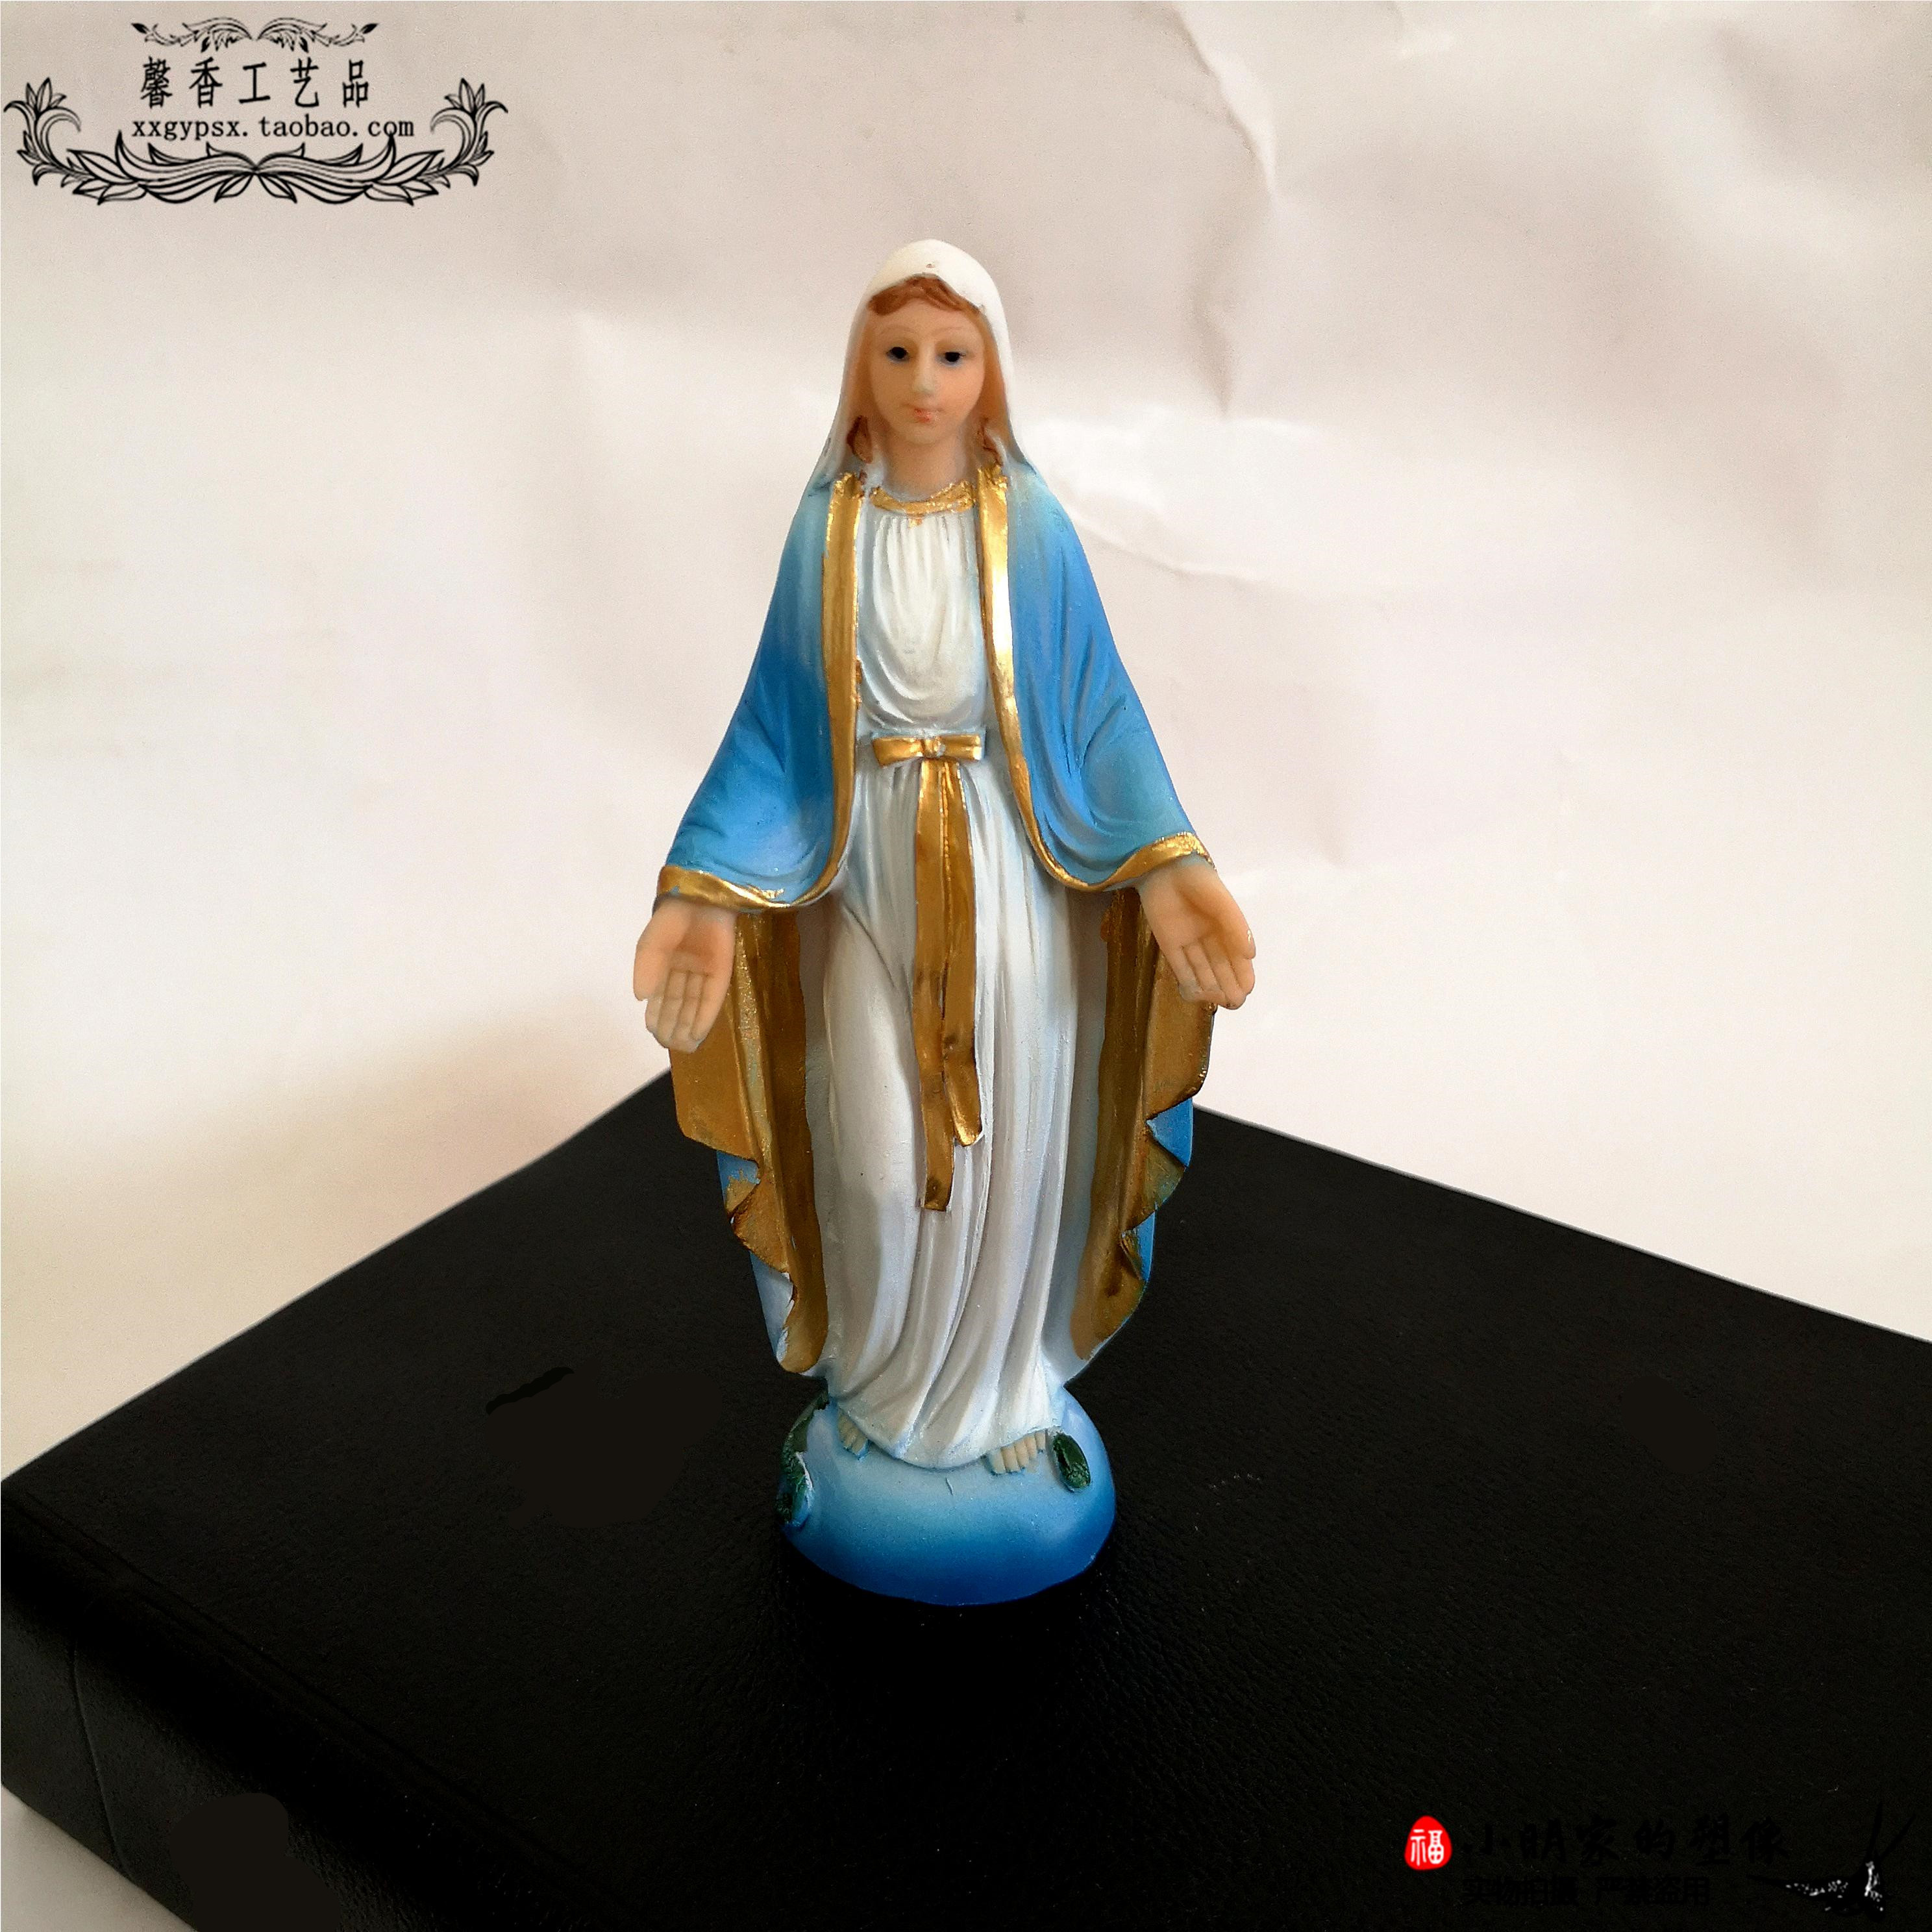 Family Prayer Statue Carries A Catholic